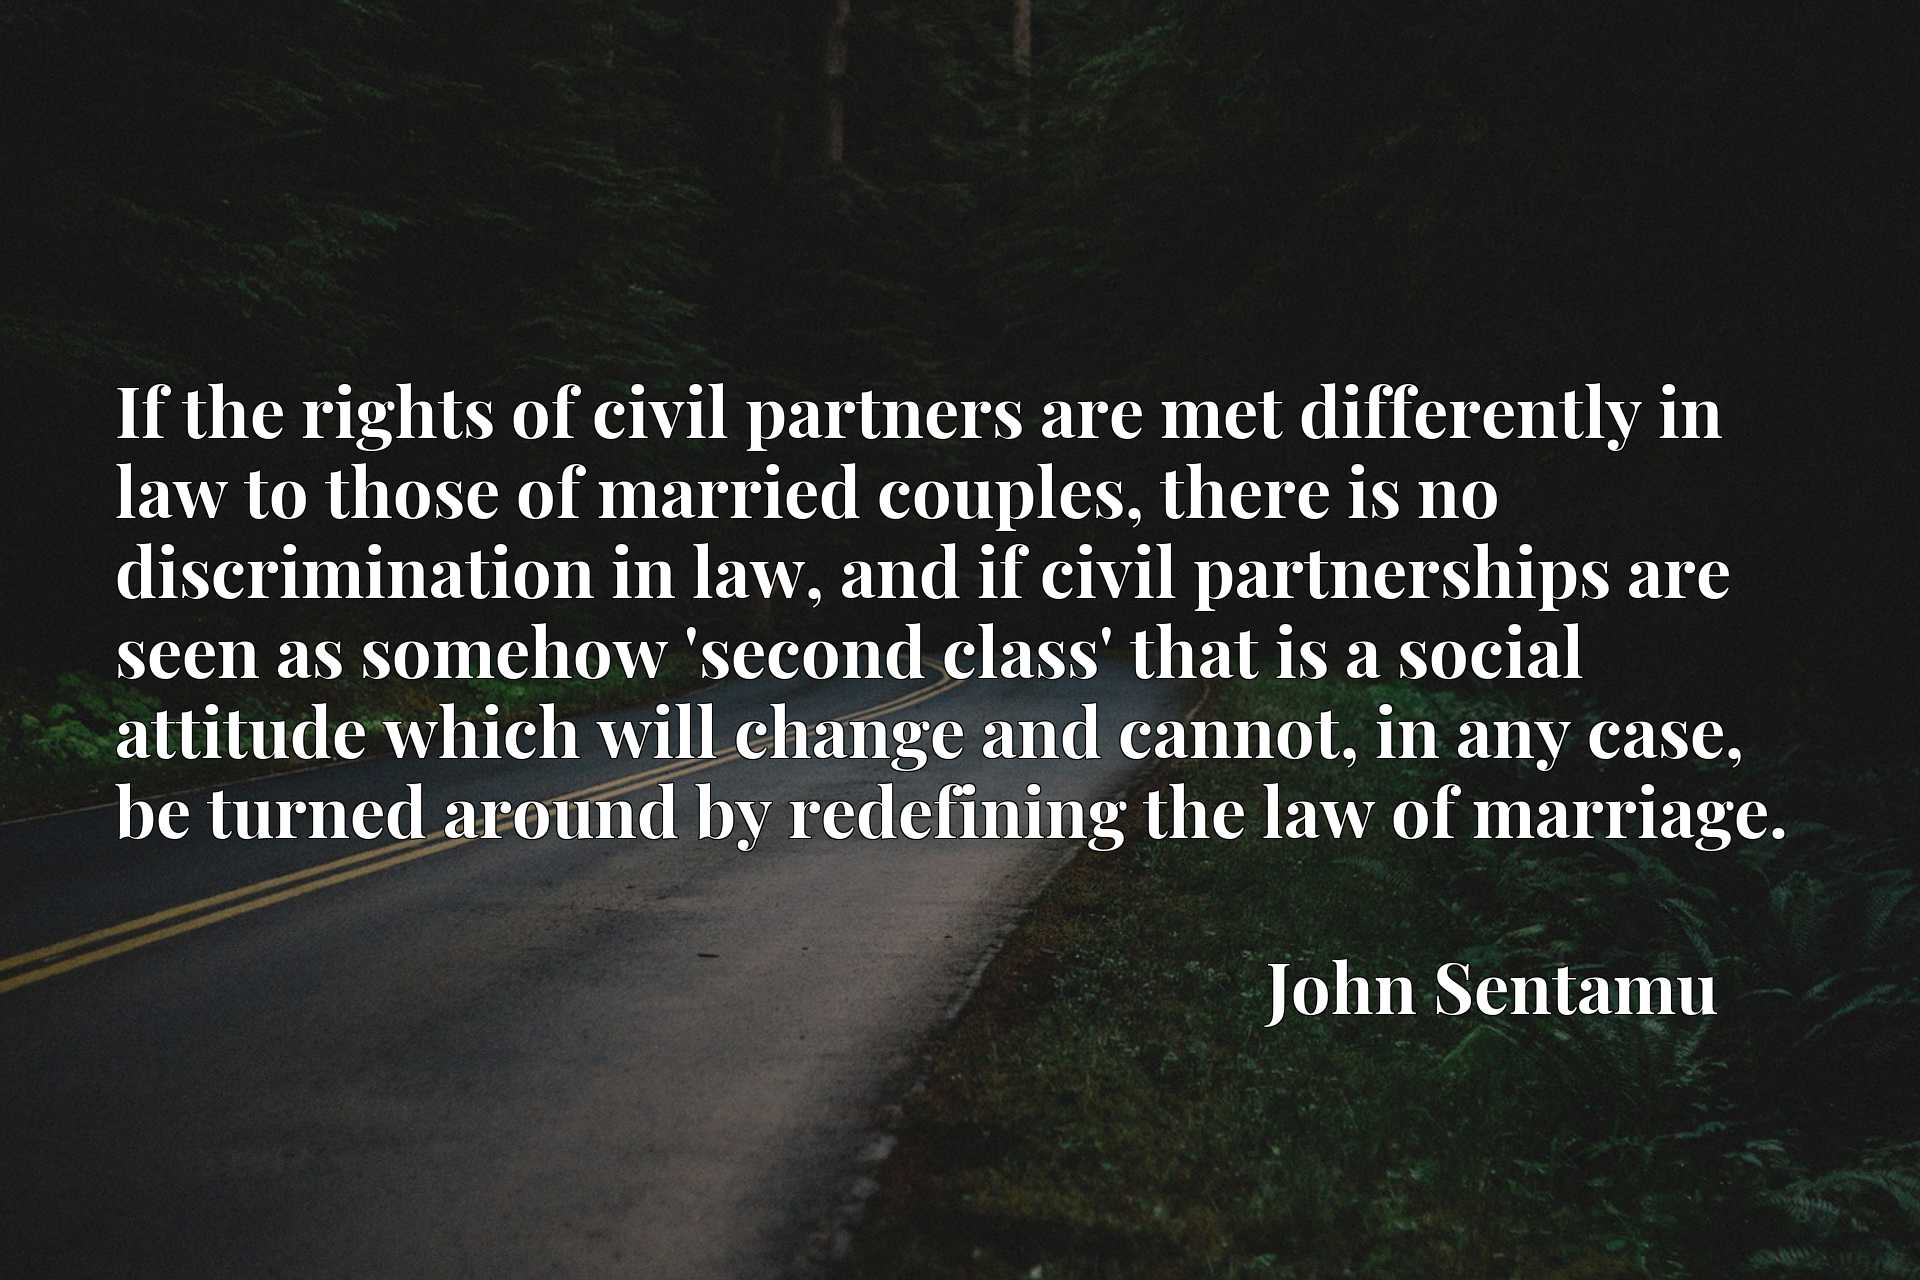 If the rights of civil partners are met differently in law to those of married couples, there is no discrimination in law, and if civil partnerships are seen as somehow 'second class' that is a social attitude which will change and cannot, in any case, be turned around by redefining the law of marriage.